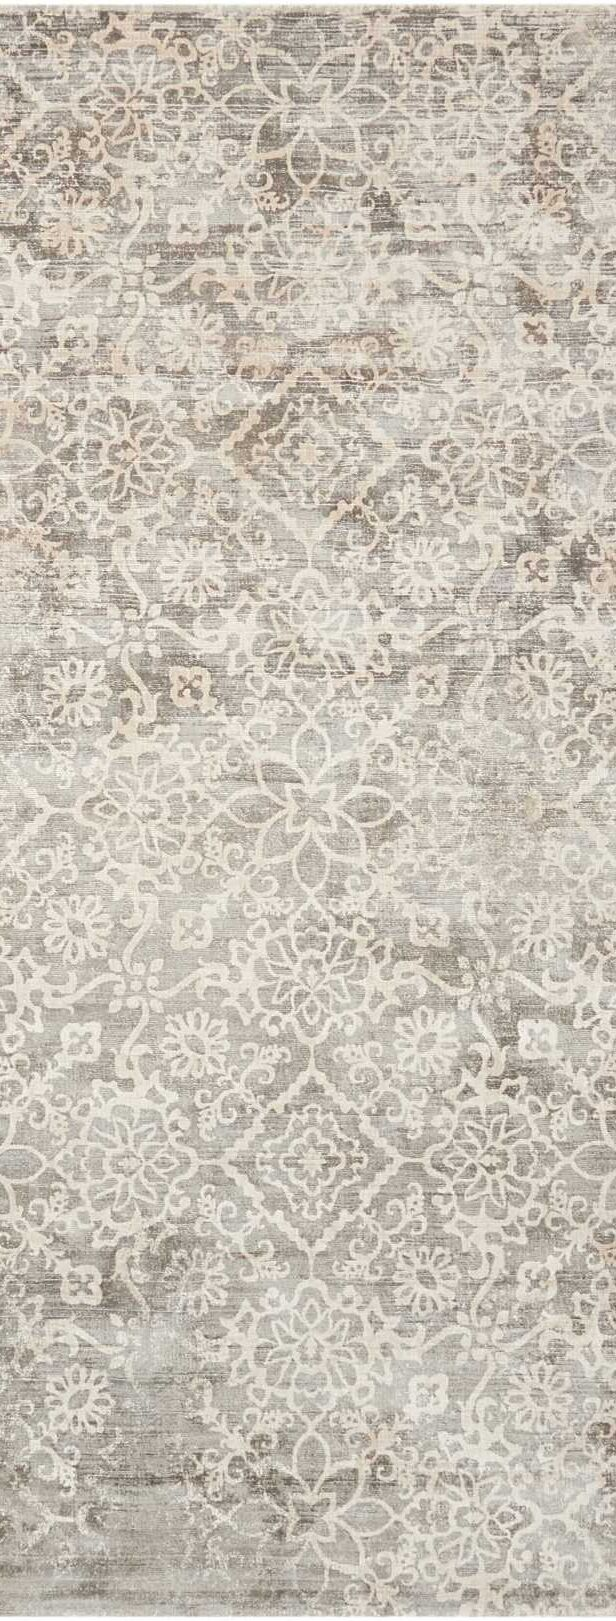 Desert Skies Hand-Loomed Gray Area Rug Rug Size: Runner 2'3